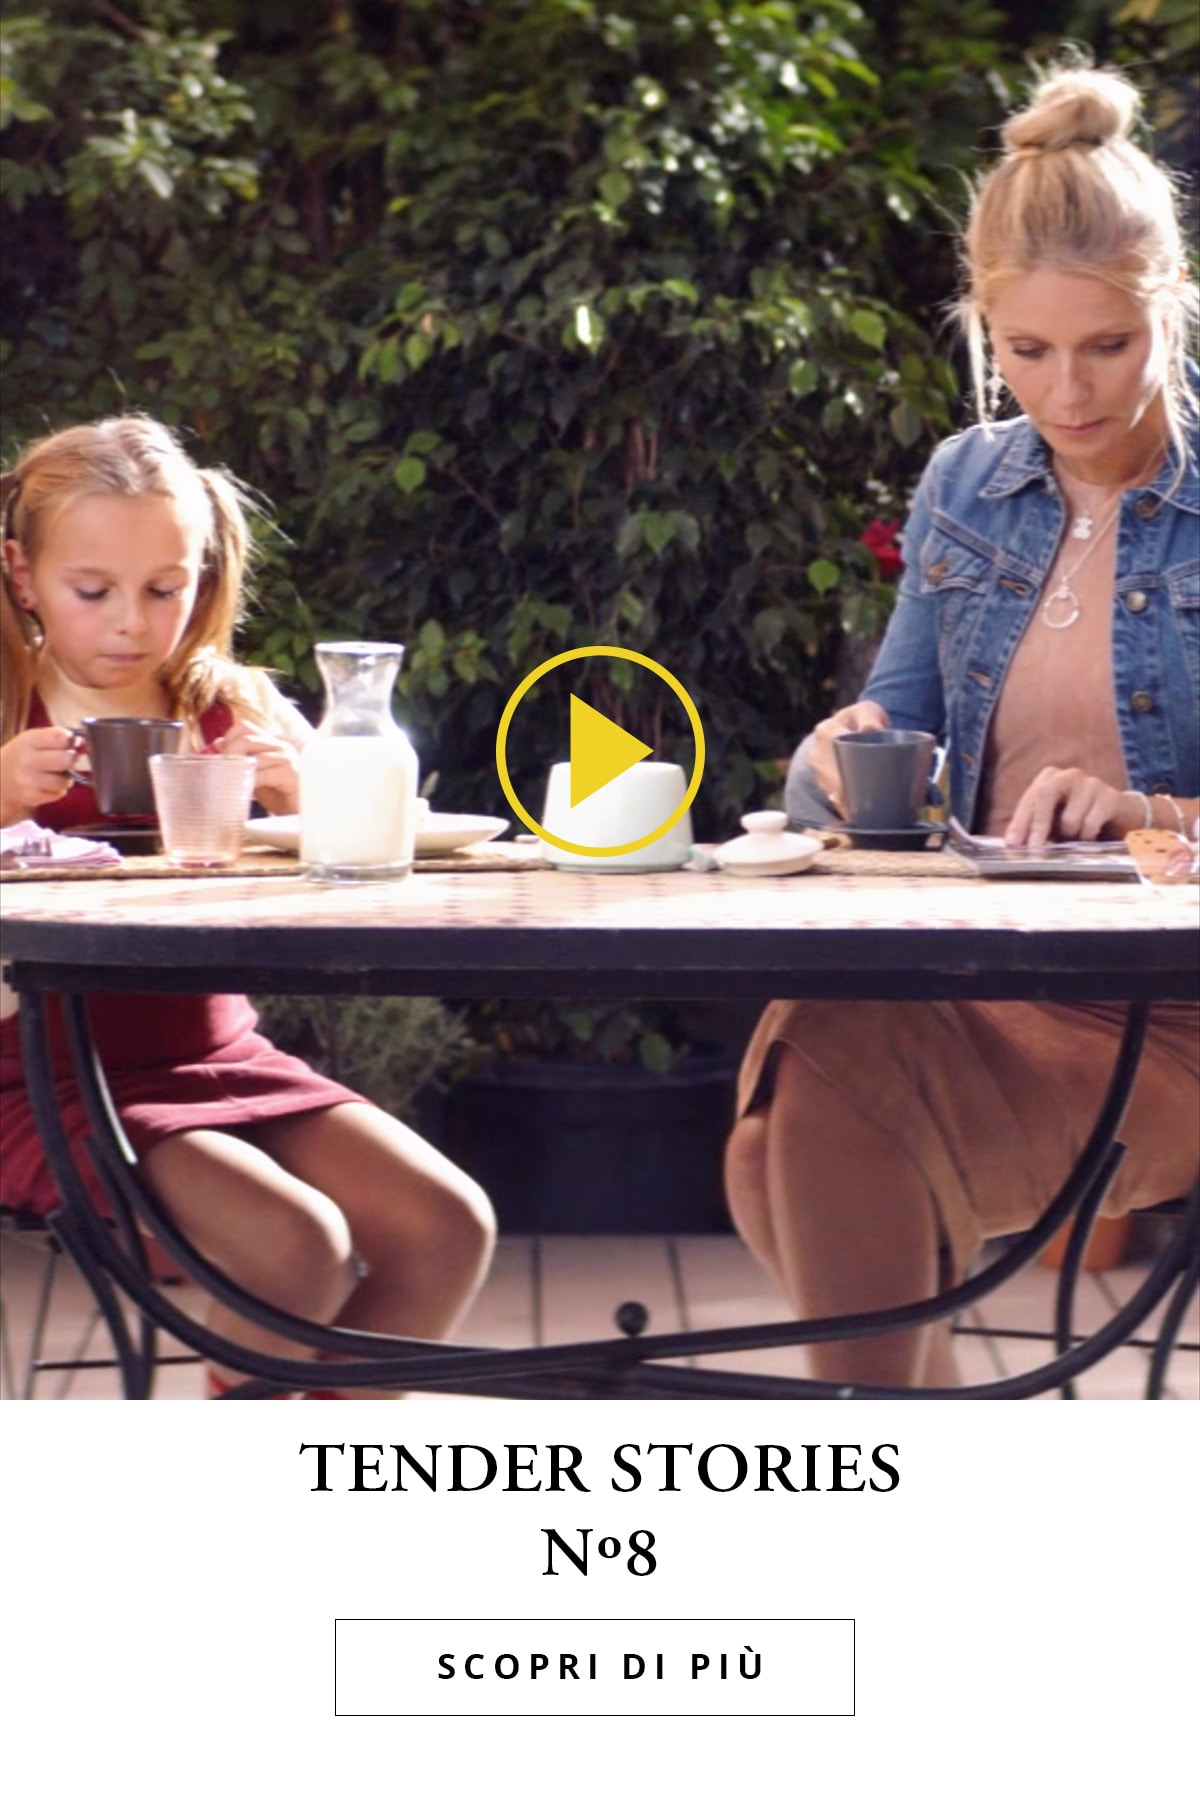 TENDER STORIES Nº8